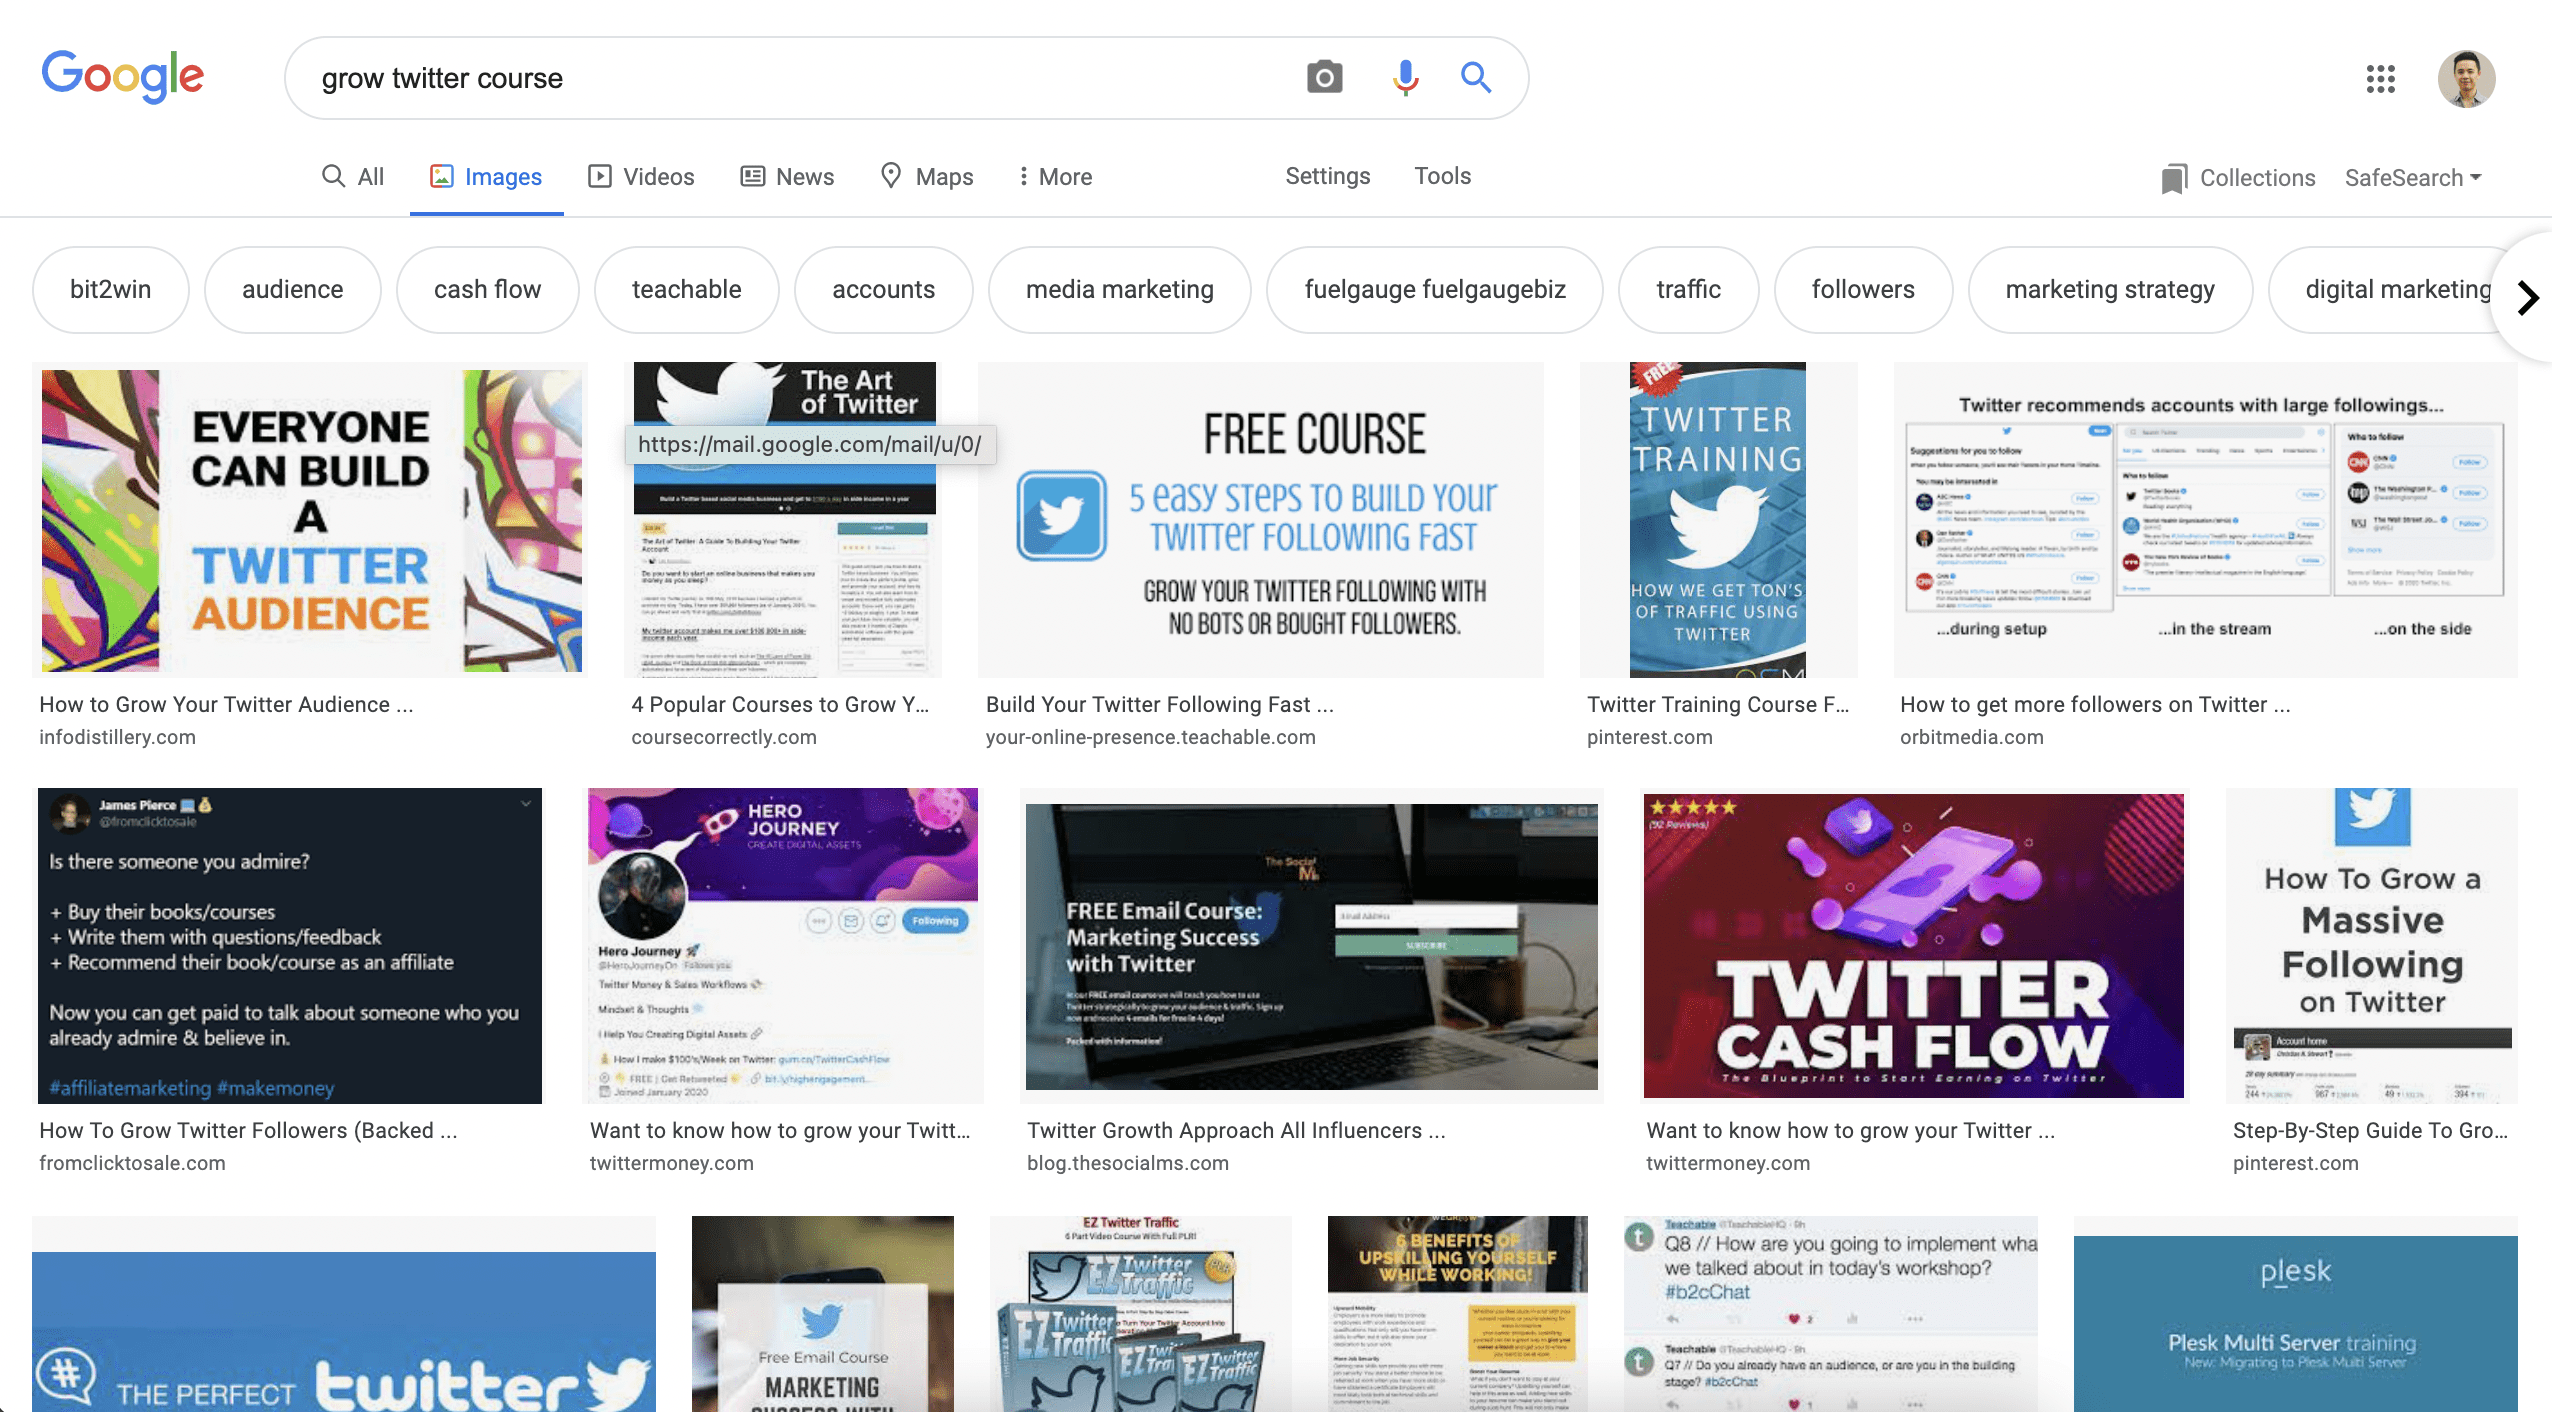 Google Search Result on Growing Twitter Courses